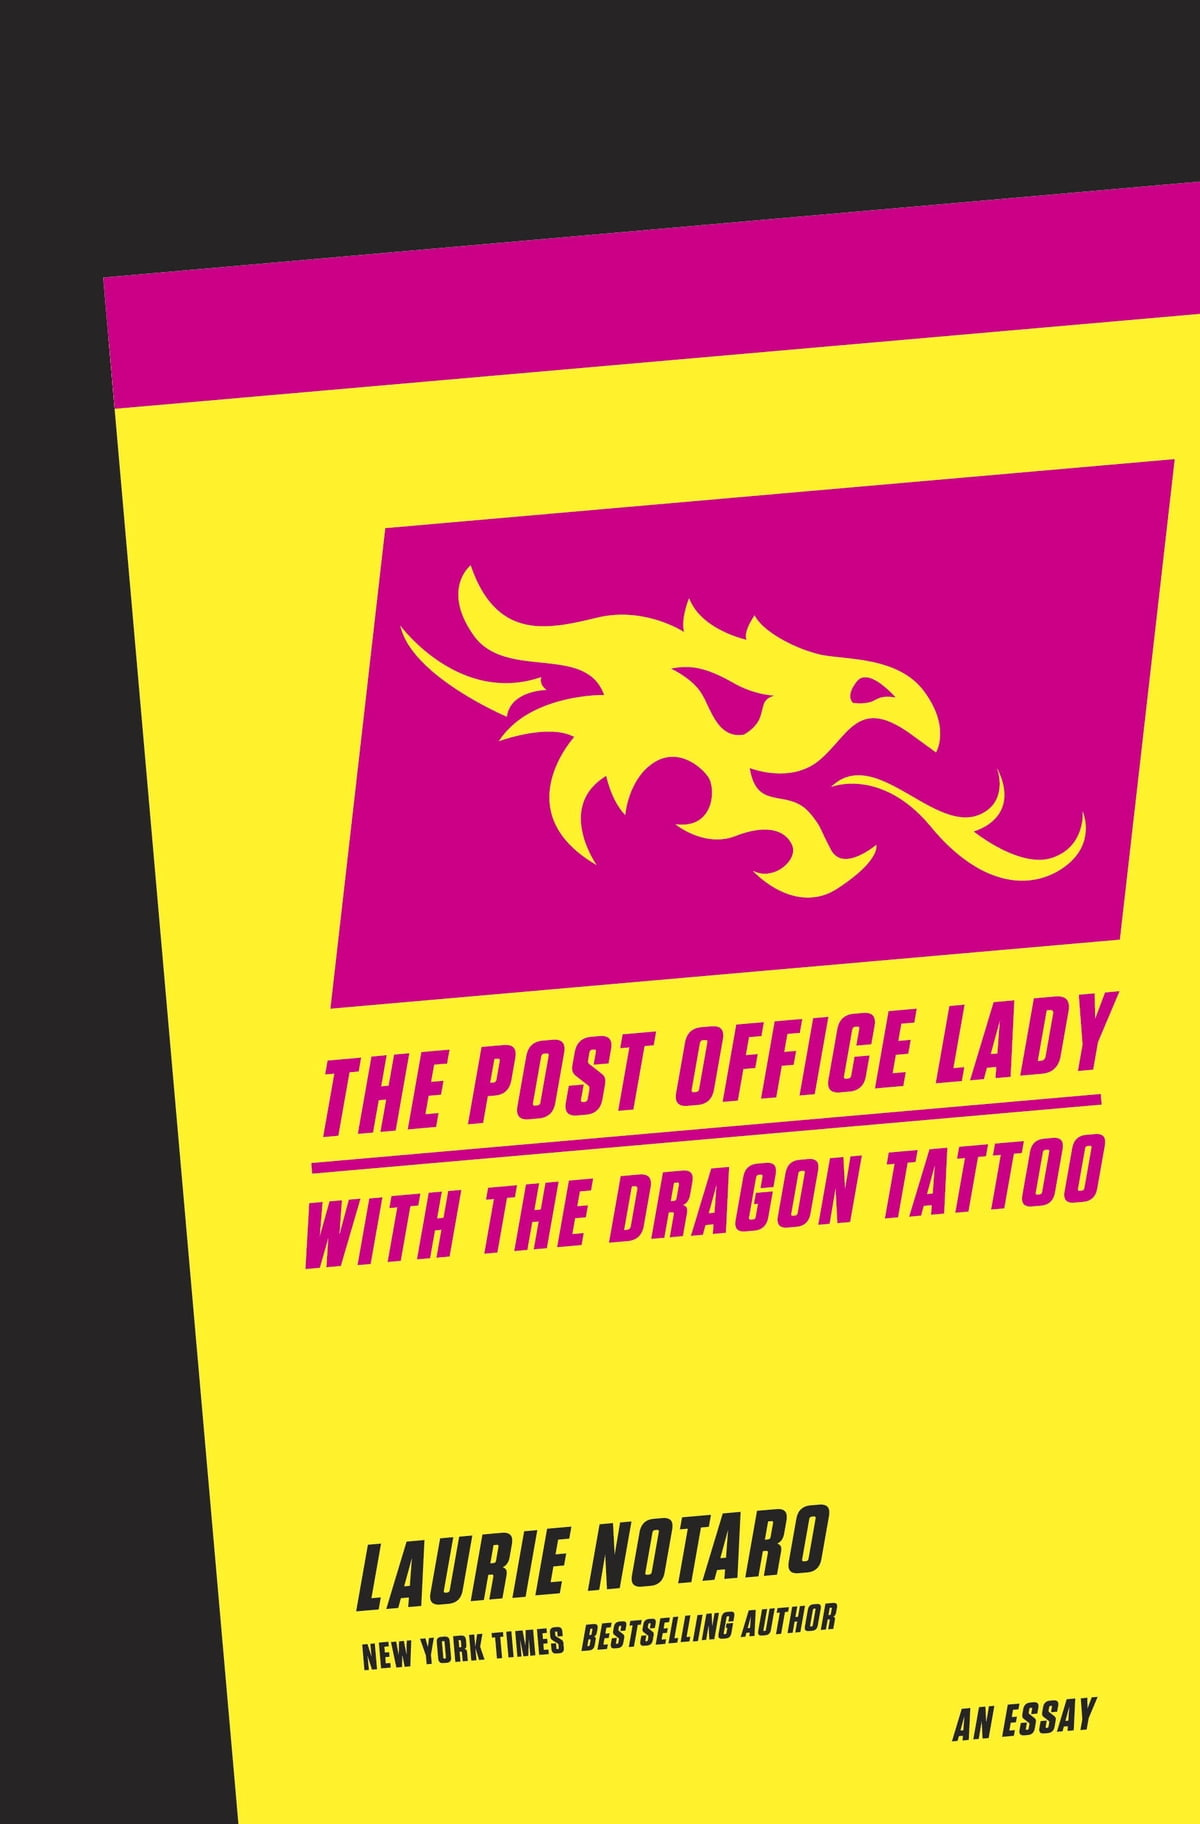 The post office lady with the dragon tattoo ebook by laurie notaro the post office lady with the dragon tattoo ebook by laurie notaro 9780345529077 rakuten kobo fandeluxe Document